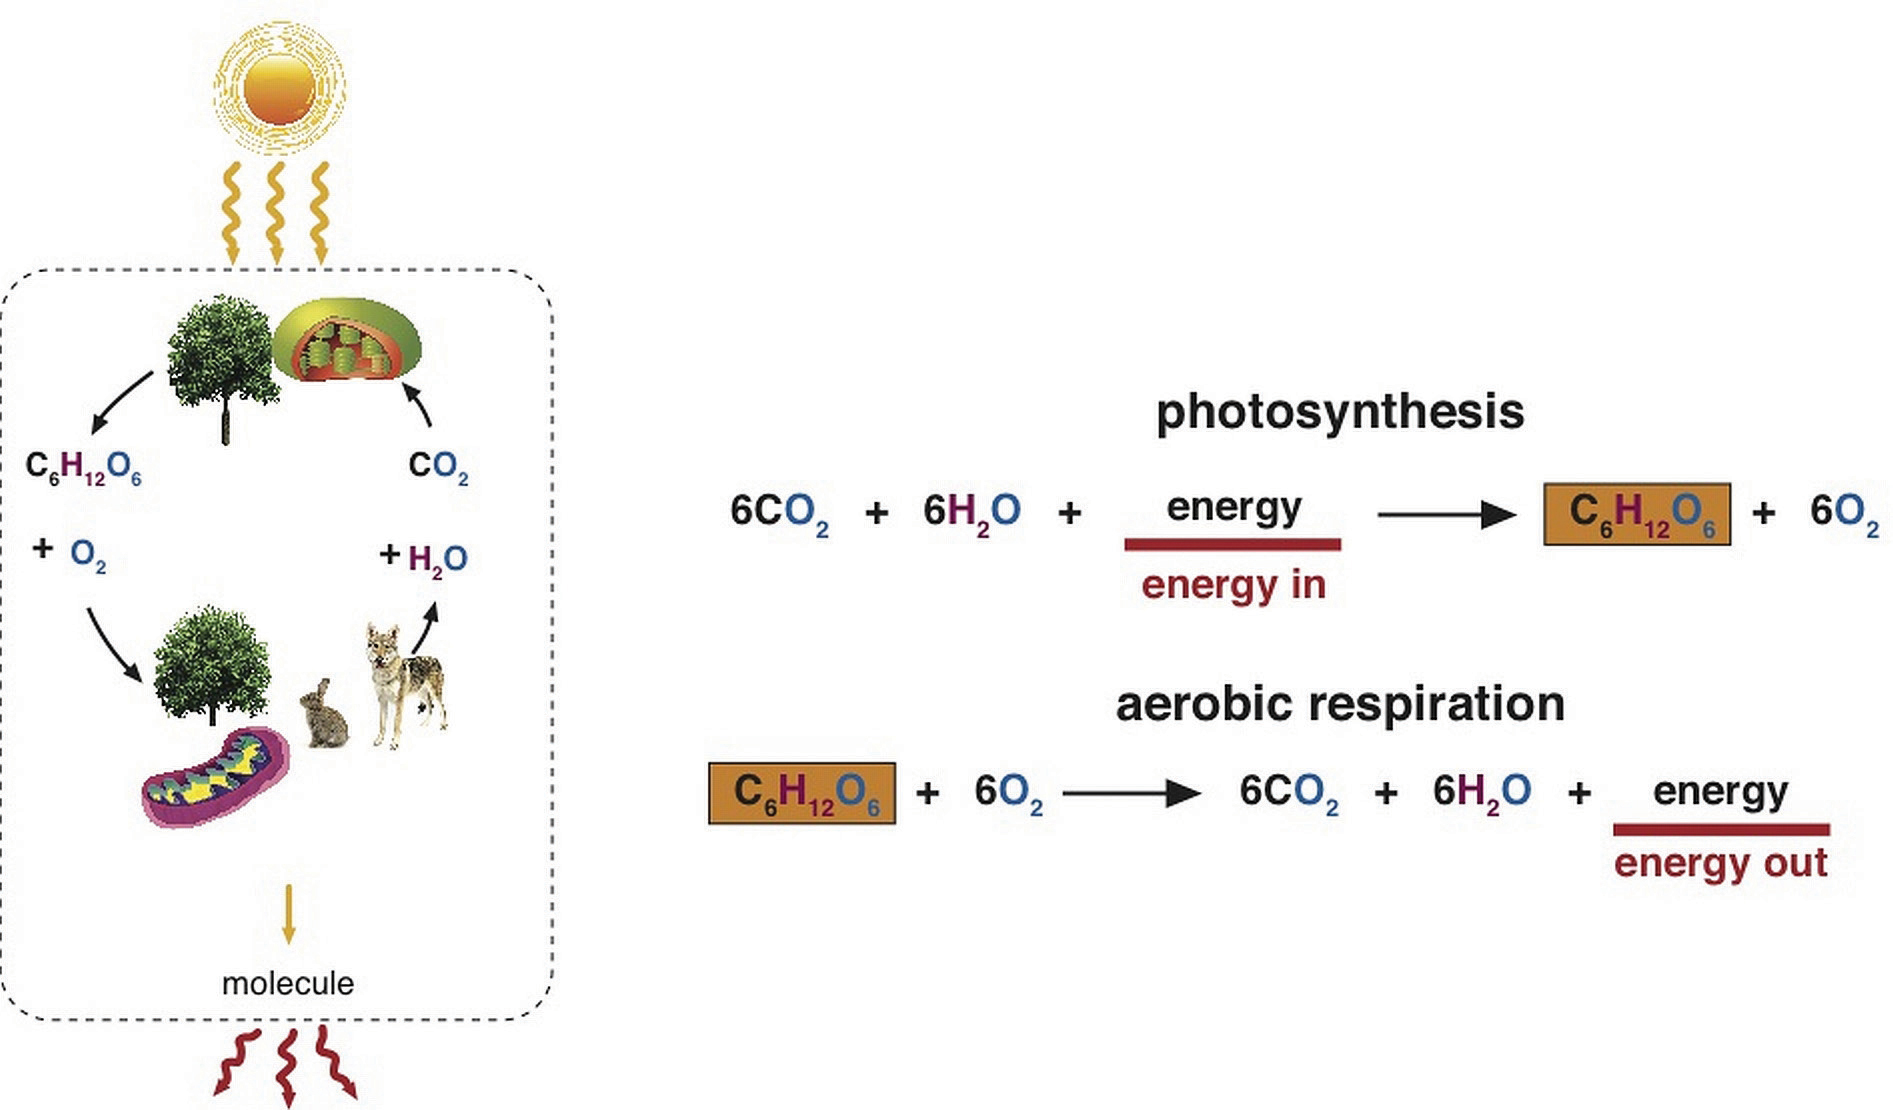 an image illustrating the process of photosynthesis and aerobic respiration.